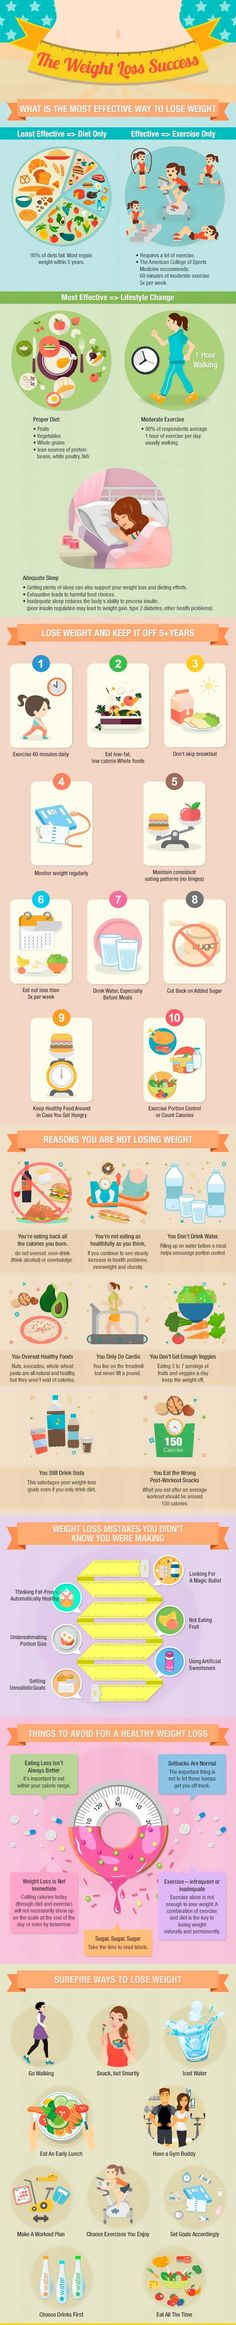 What does it take to drop 23 pounds in 21 days. The most effective ways to lose weight